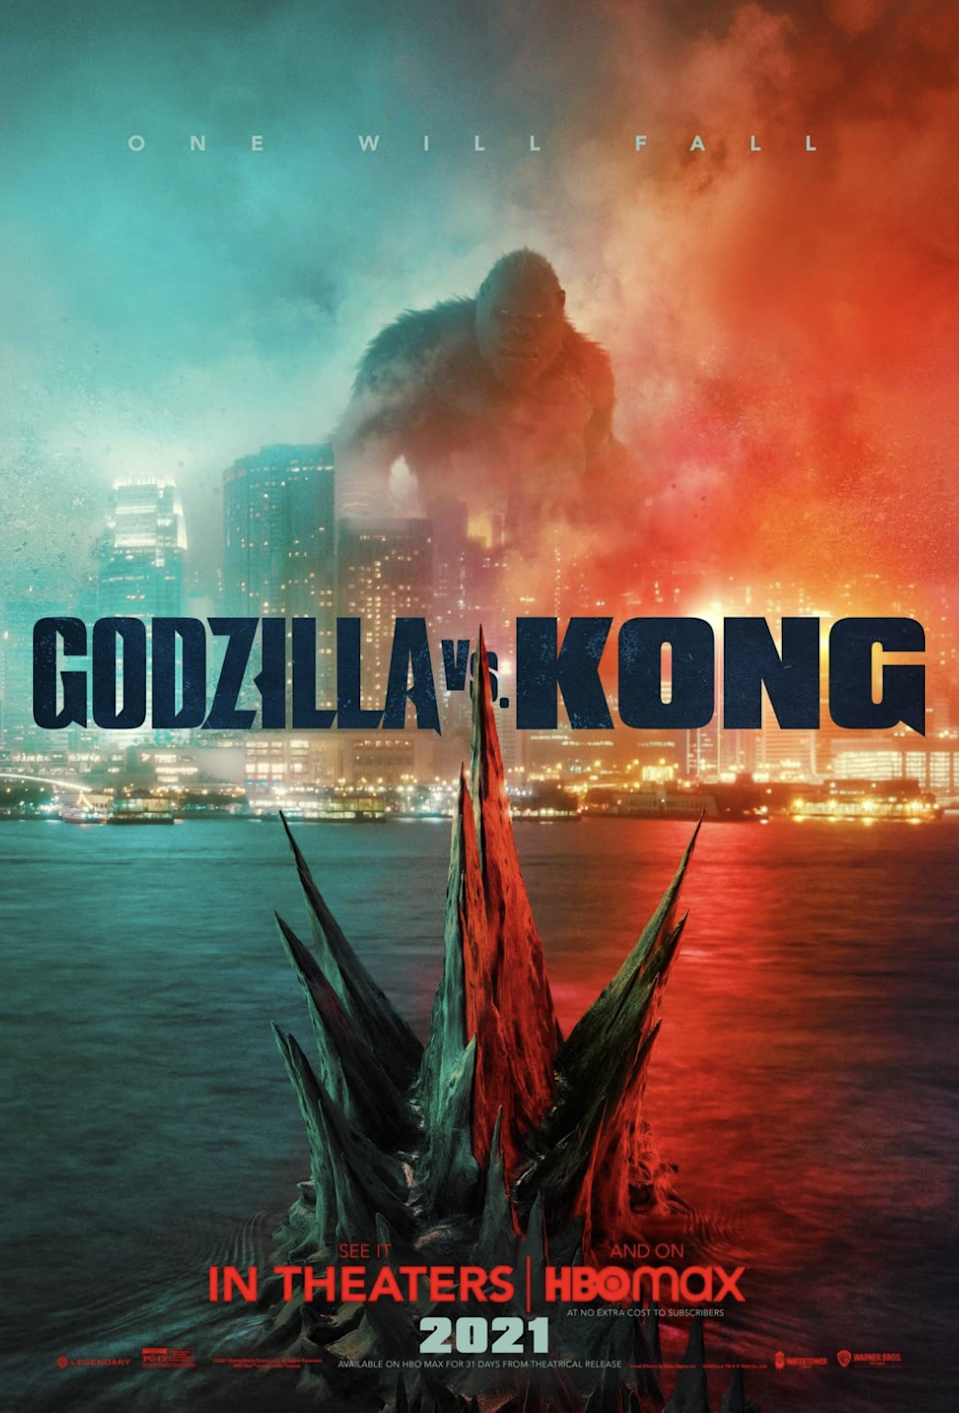 """<p>In another year, this movie might not have made the list. But <em>Godzilla vs. Kong</em> is especially noteworthy in 2021 because it marked a return of sorts to the theater-going experience. As vaccines were rolled out and theaters began opening up, <em>Godzilla vs. Kong</em> premiered…and immediately broke several box-office records. To date, it's grossed over $427 million worldwide. </p> <p><a href=""""https://www.amazon.com/gp/video/detail/amzn1.dv.gti.b4a168a6-a374-46dc-9983-a9816fbb166f?"""" rel=""""nofollow noopener"""" target=""""_blank"""" data-ylk=""""slk:Buy it on Amazon Prime"""" class=""""link rapid-noclick-resp""""><em>Buy it on Amazon Prime</em></a></p>"""